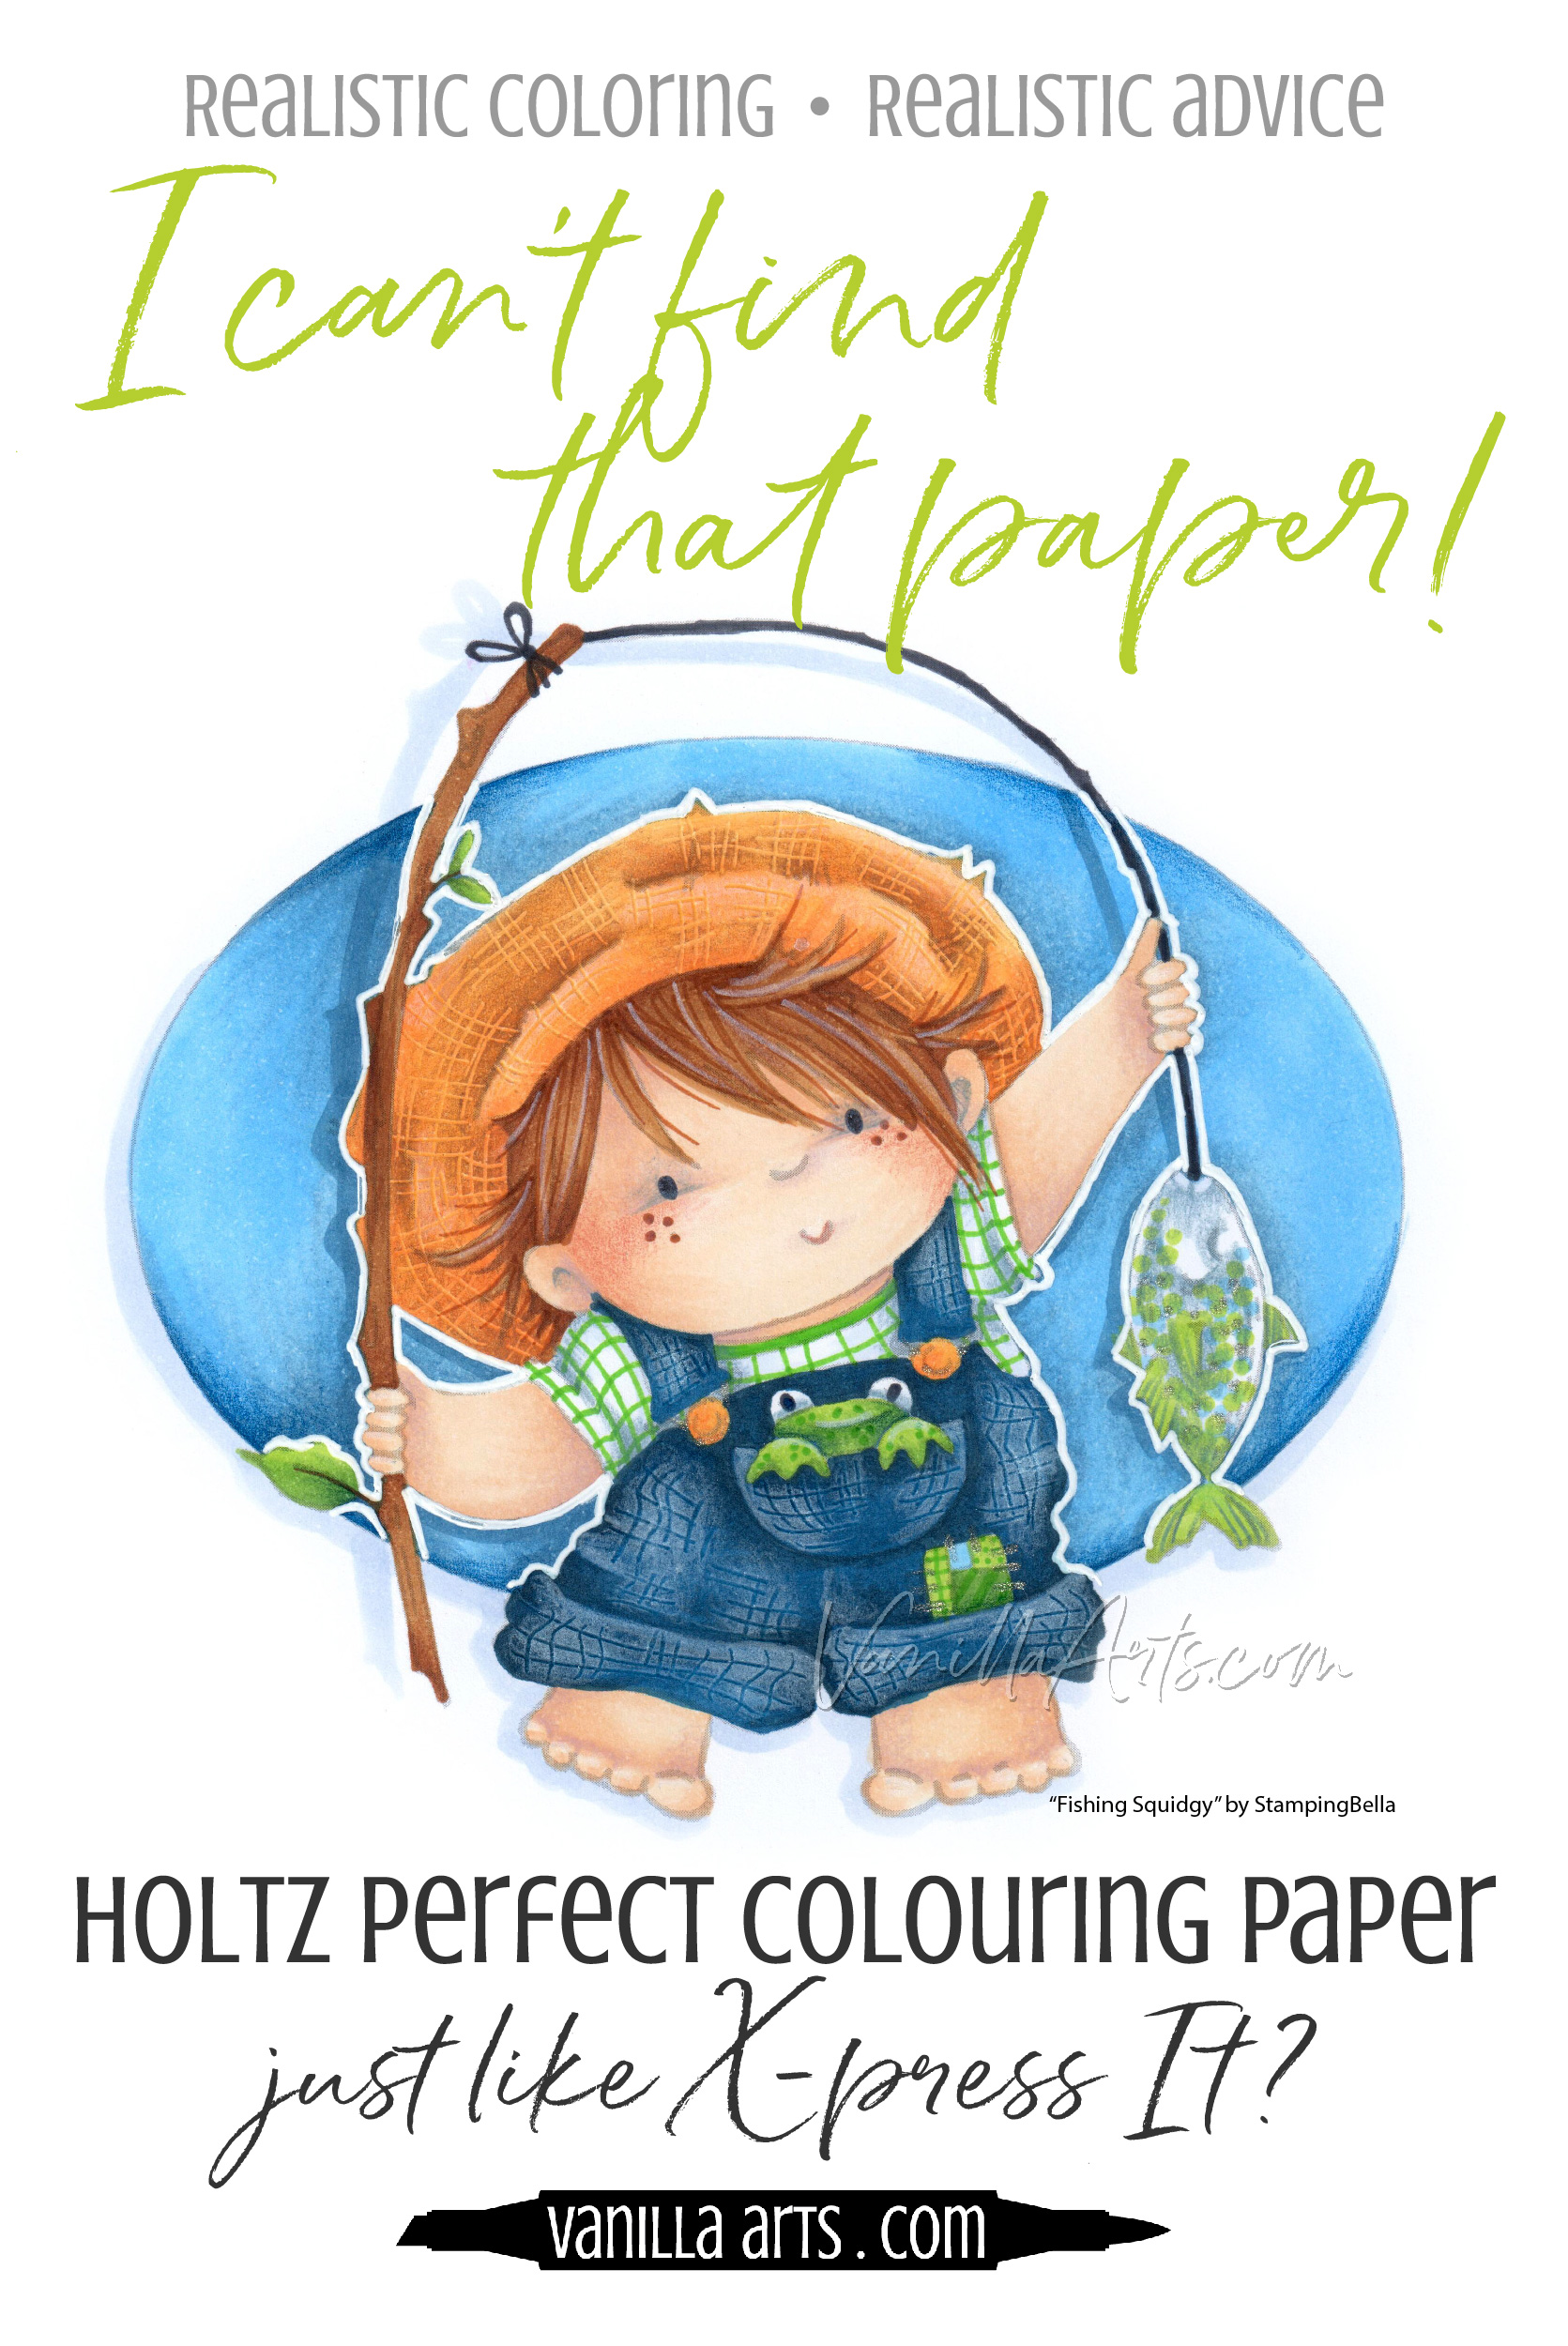 Is Holtz Perfect Colouring Paper really perfect for Copic Marker projects? We test this cardstock to find out! | VanillaArts.com | #copic #coloredpencil #howtocolor